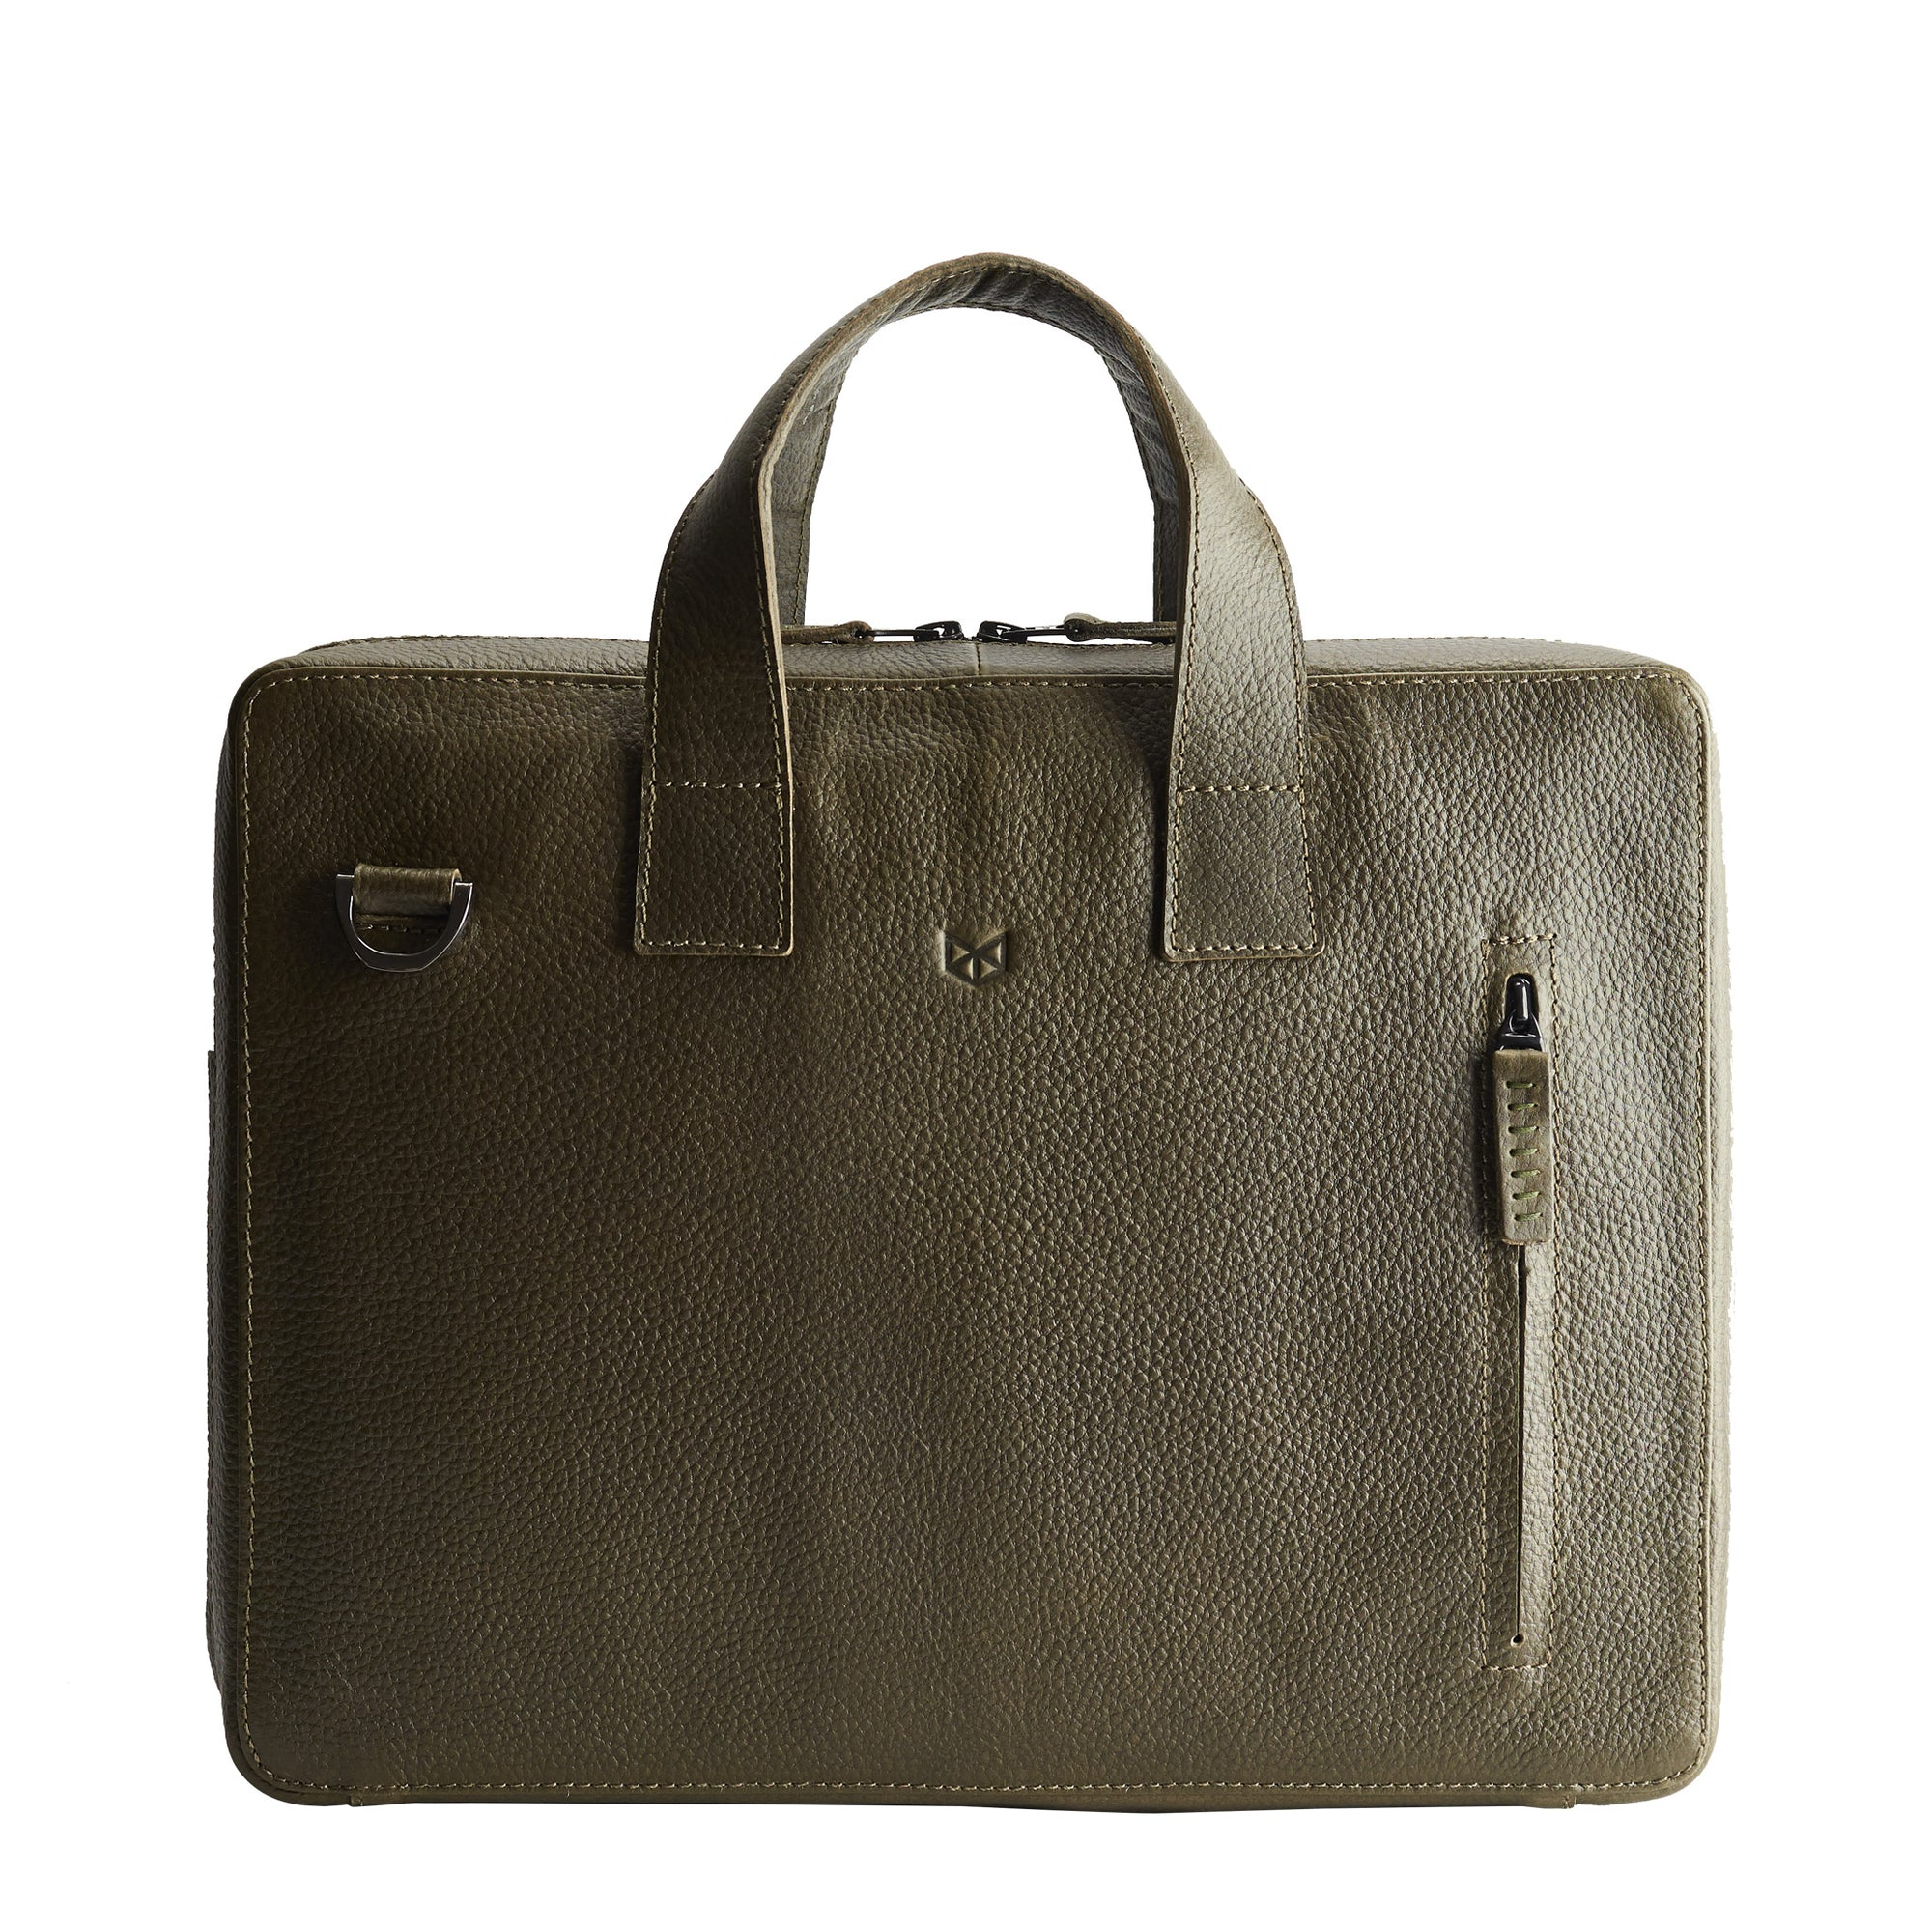 Green leather workbag for men. Unique office style bag